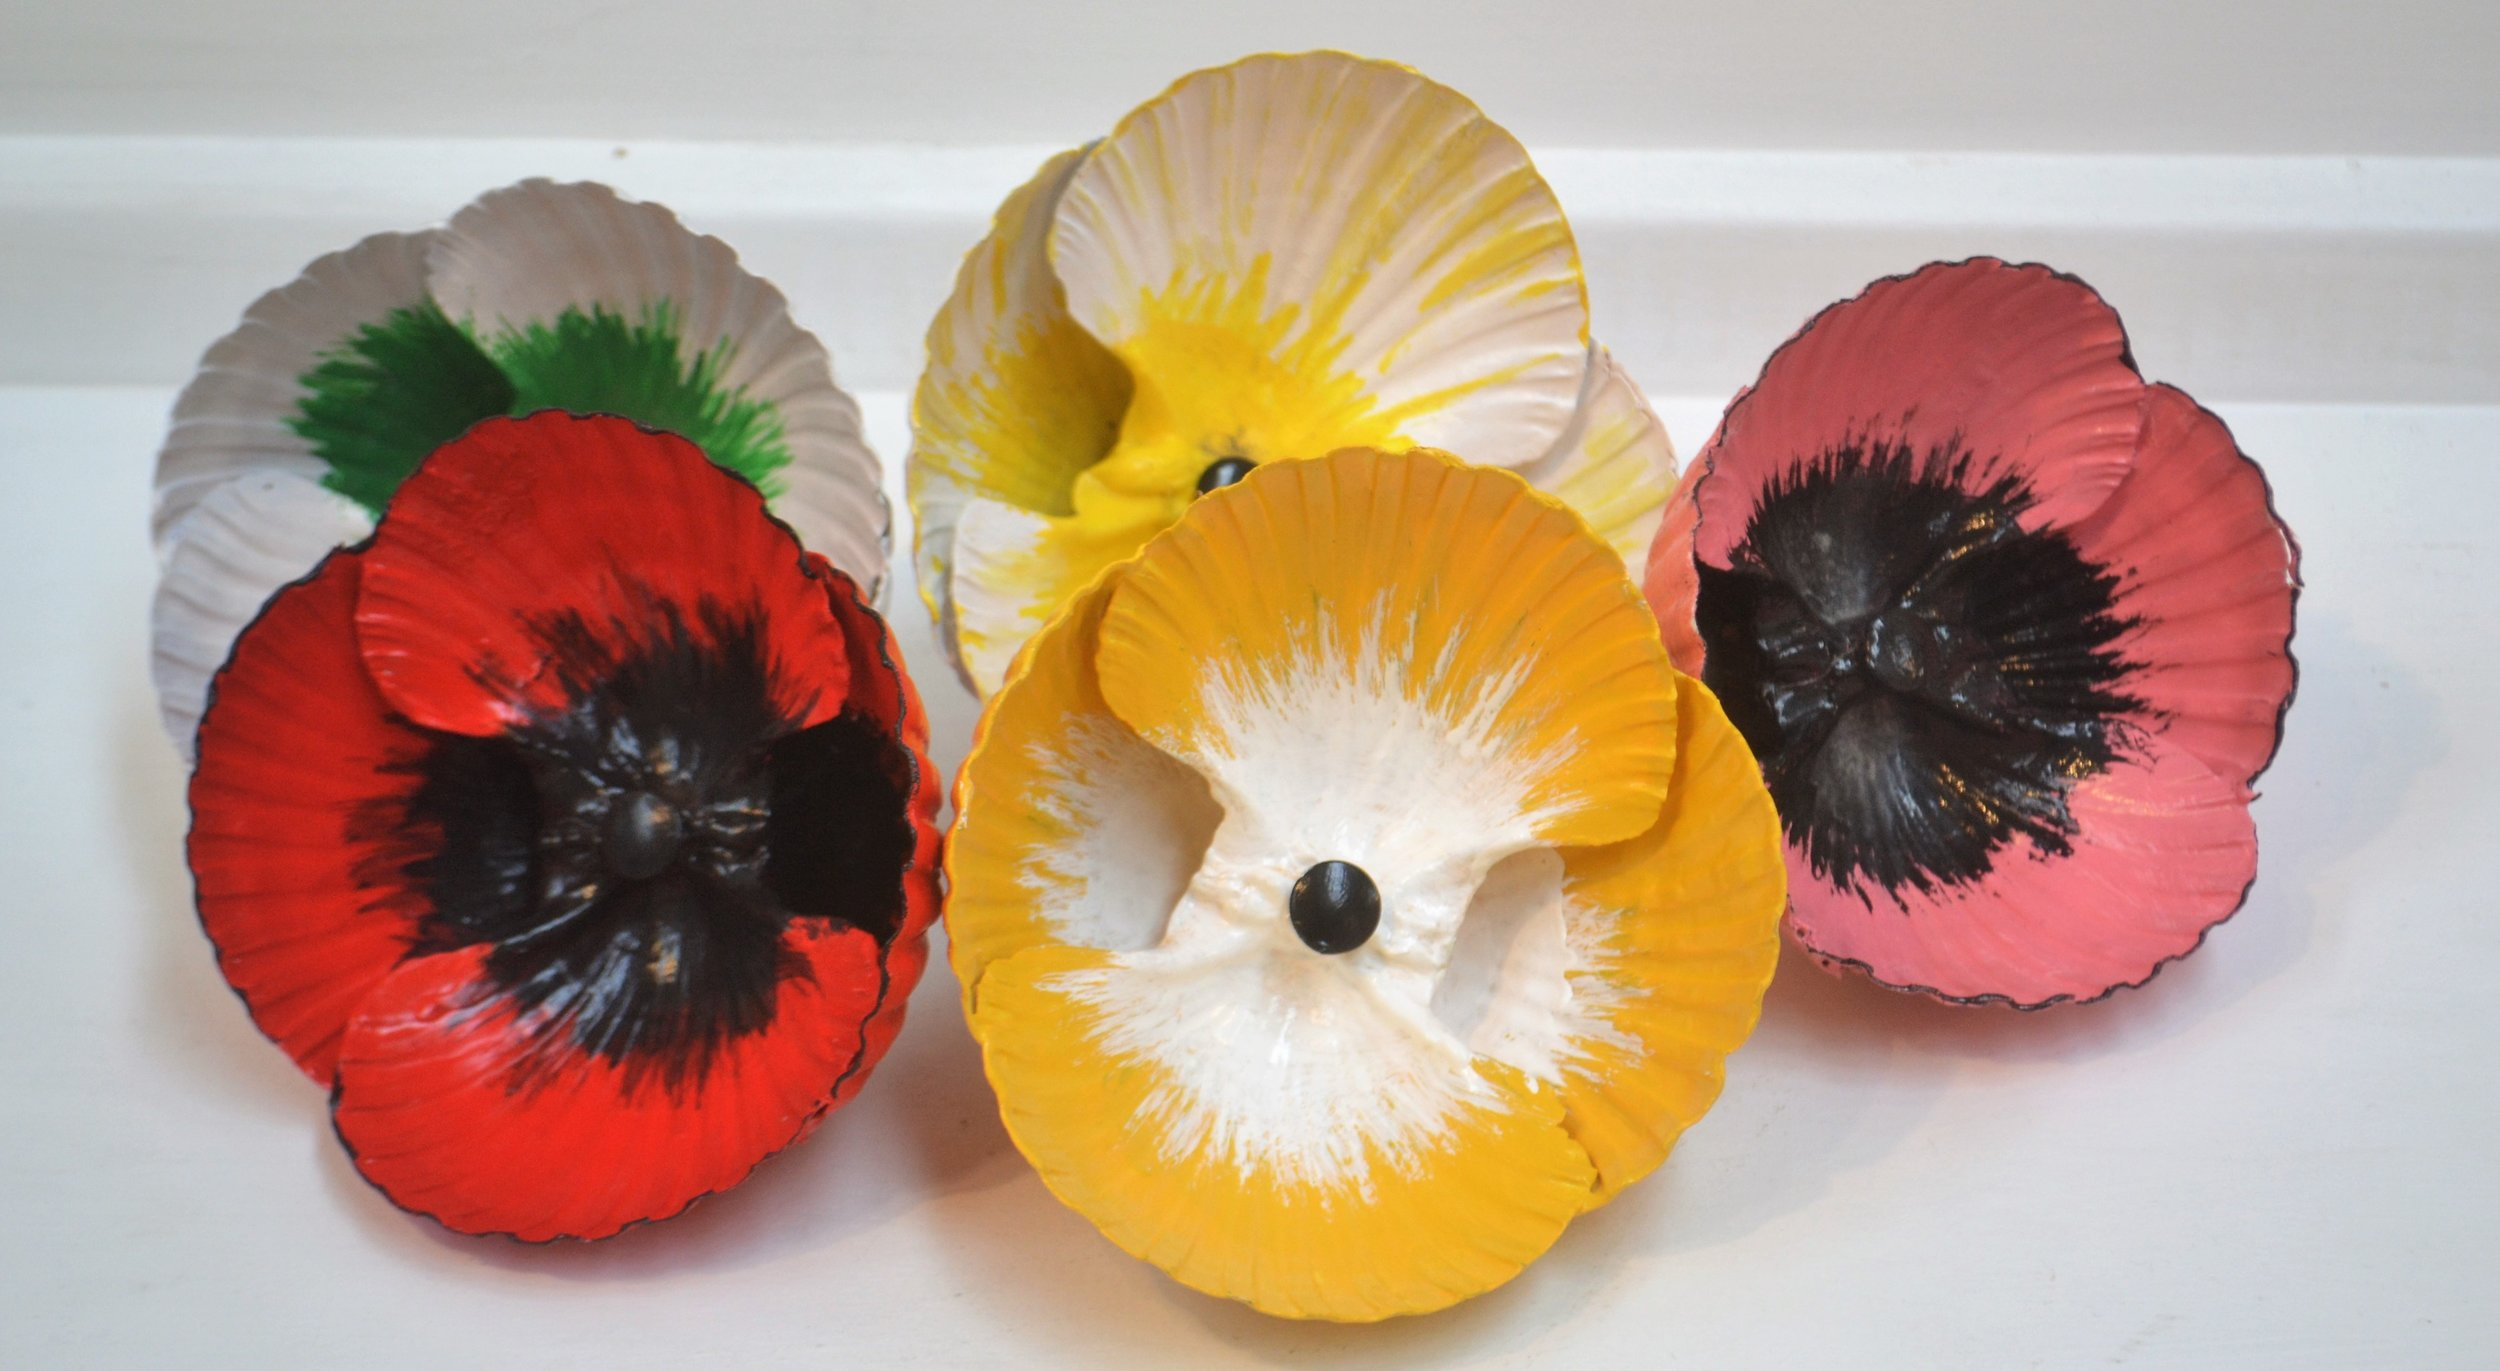 Large Poppies  Fay Clarke, painted scallop shell fixed to metal rod  $25.00 ea or    enquire    for multiples